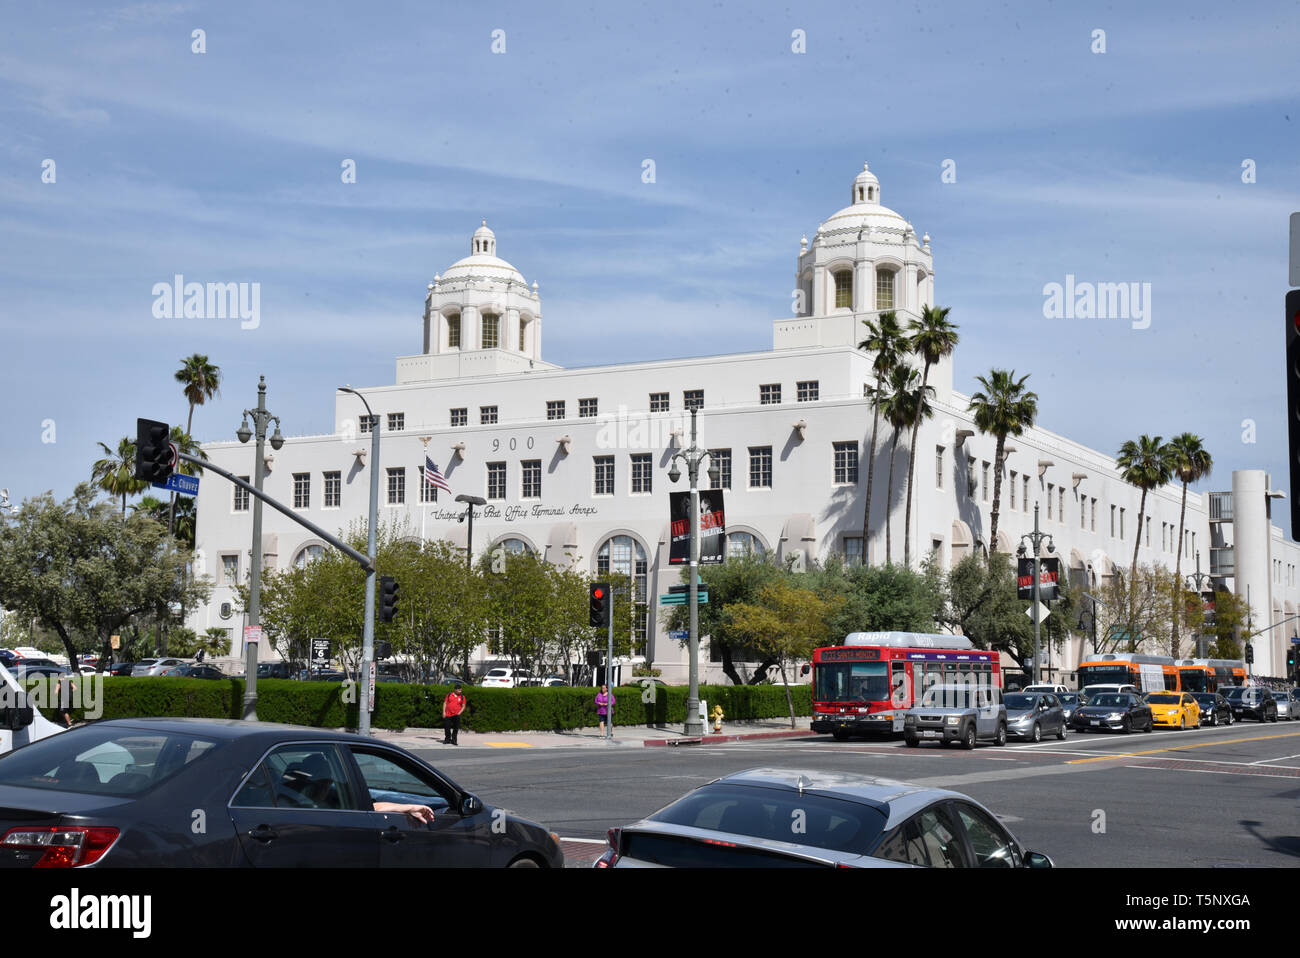 LOS ANGELES, CA/USA  - APRIL 14, 2019: the USPS Terminal Annex in Los Angeles is an example of Mission Revival and Spanish Colonial Revival architectu - Stock Image